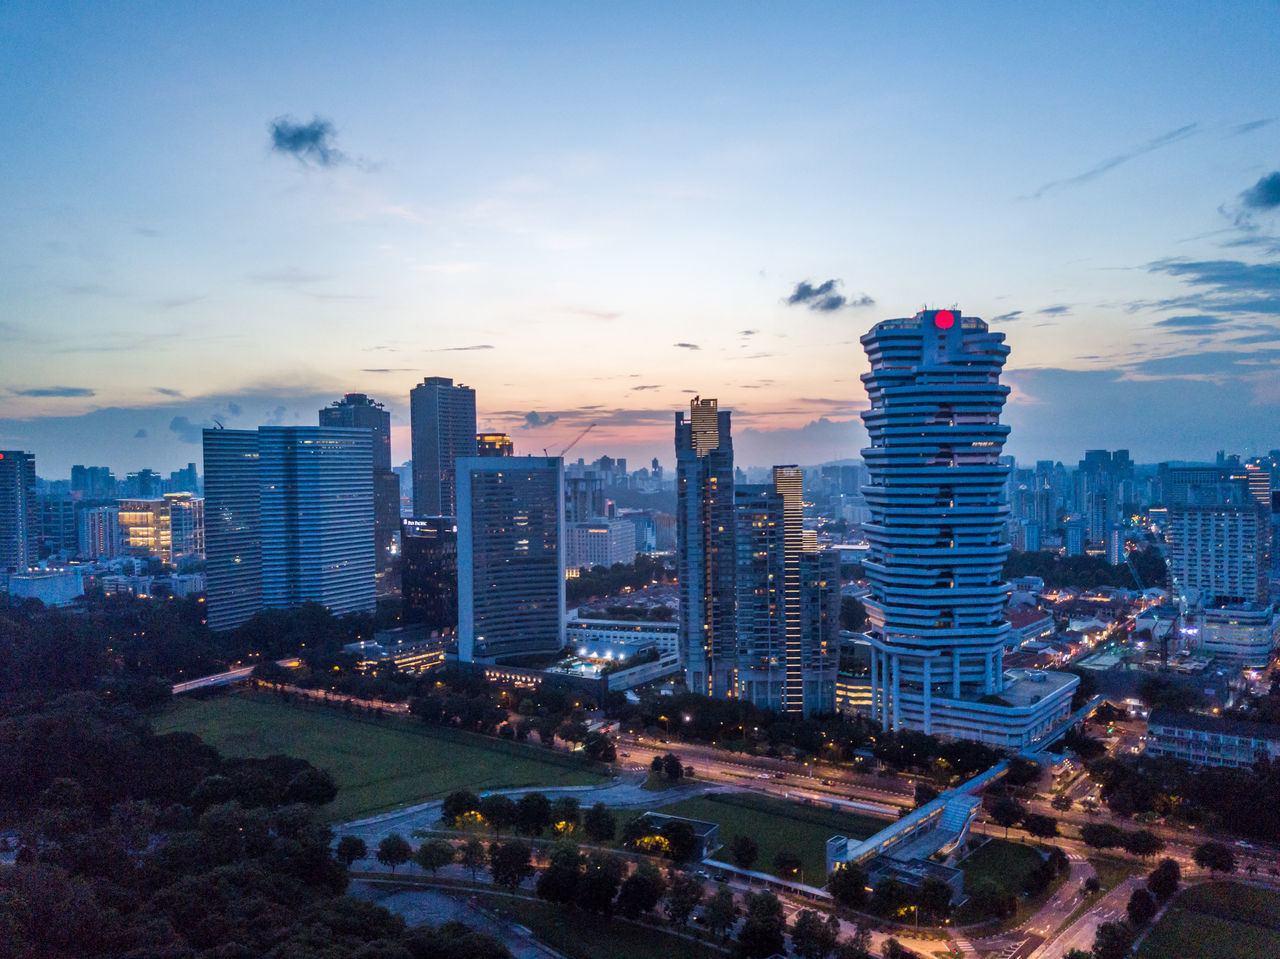 Architecture Building Exterior Built Structure City Cityscape Cloud - Sky Day Drone  Dronephotography Growth High Angle View Illuminated Modern No People Outdoors Singapore Sky Skyscraper Sunset Travel Destinations Urban Skyline